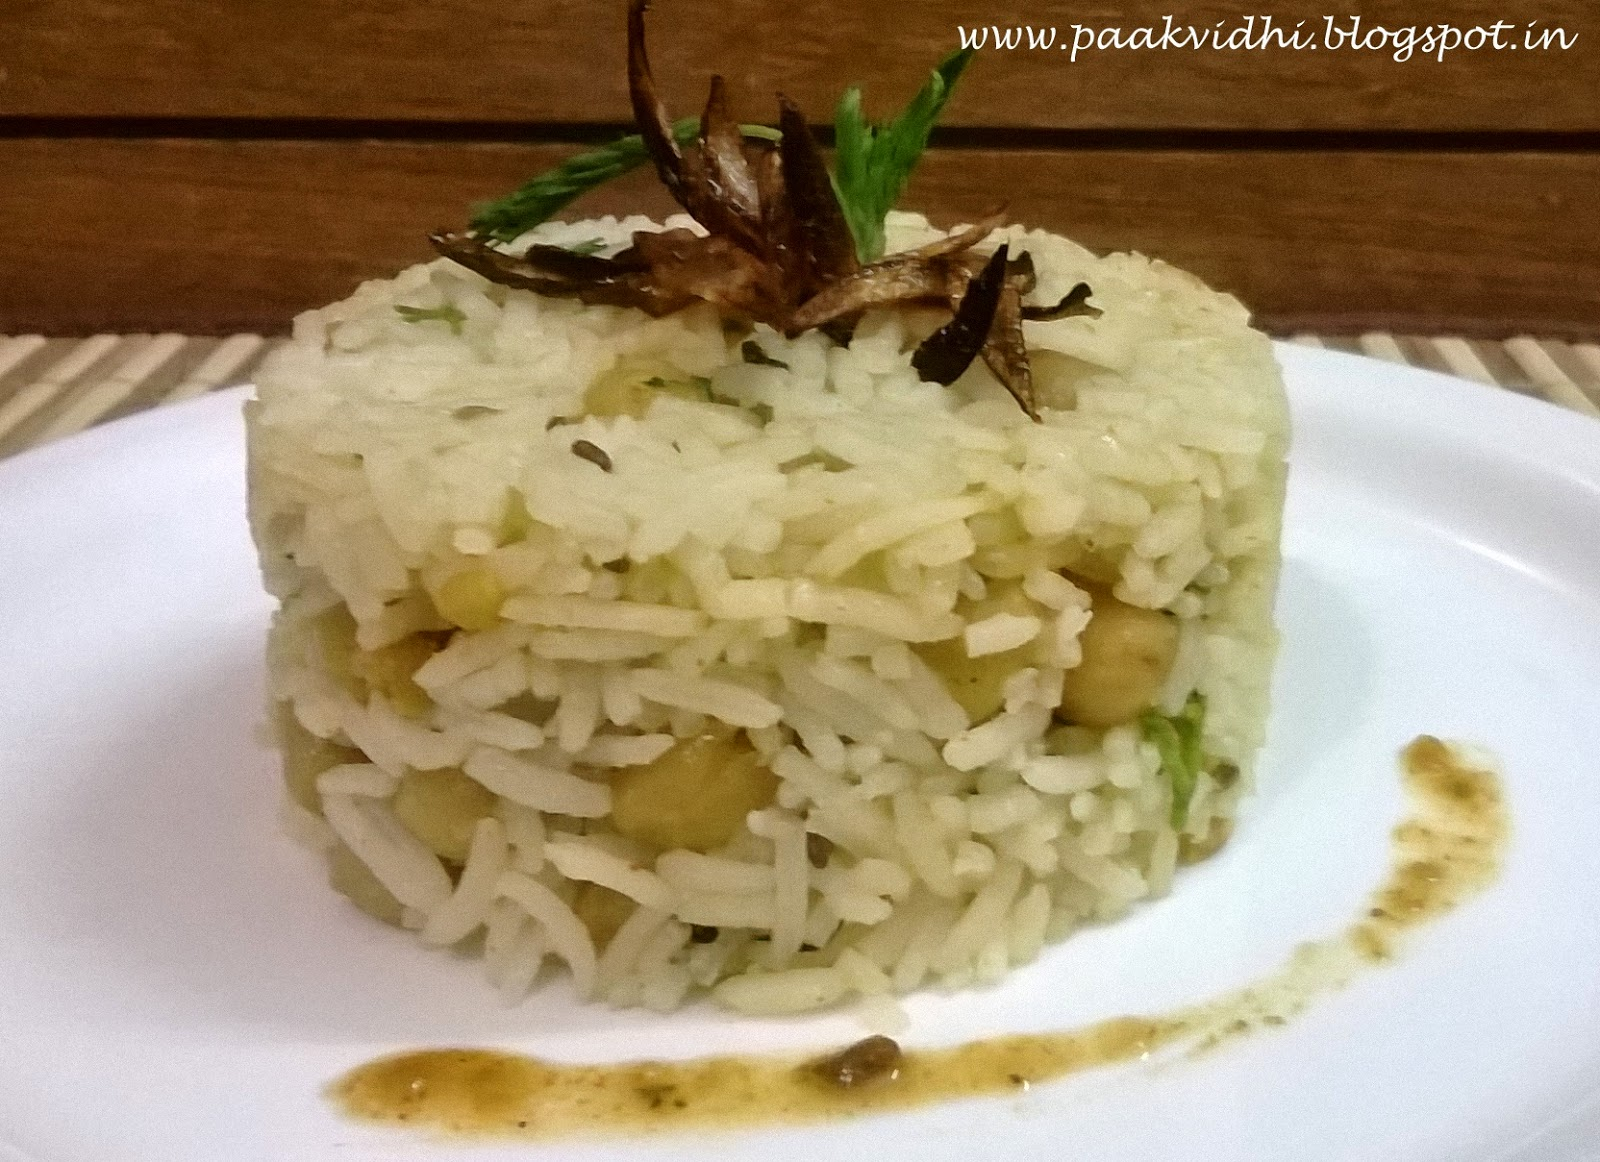 http://paakvidhi.blogspot.in/2014/05/ingredients-1-cup-basmati-rice-1-cup.html